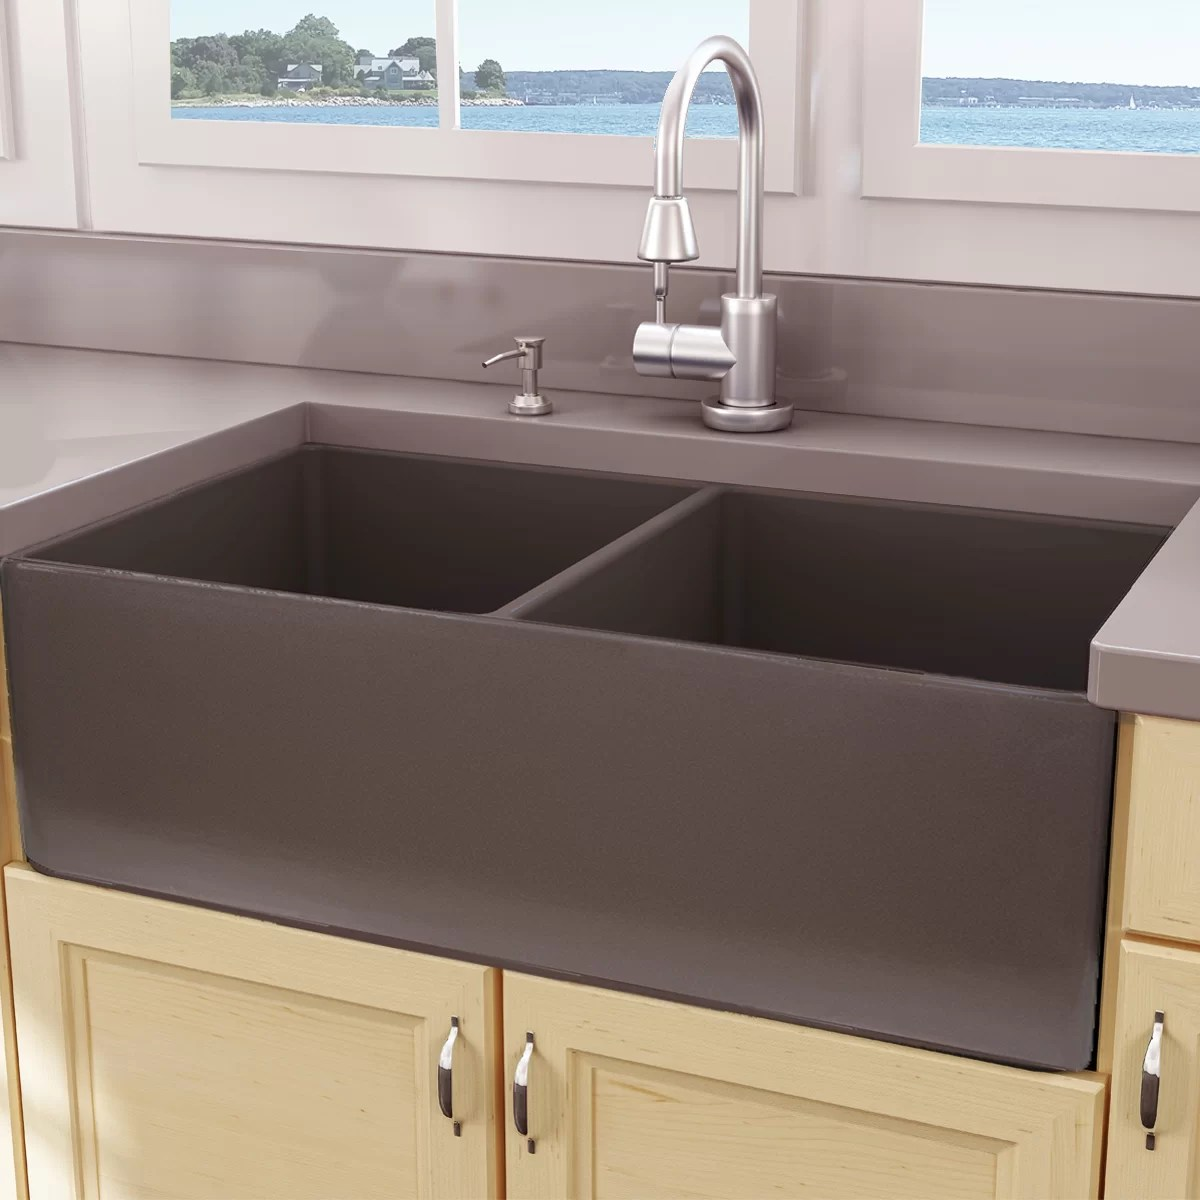 Kitchen Sink For 18 Cabinet Cape 33